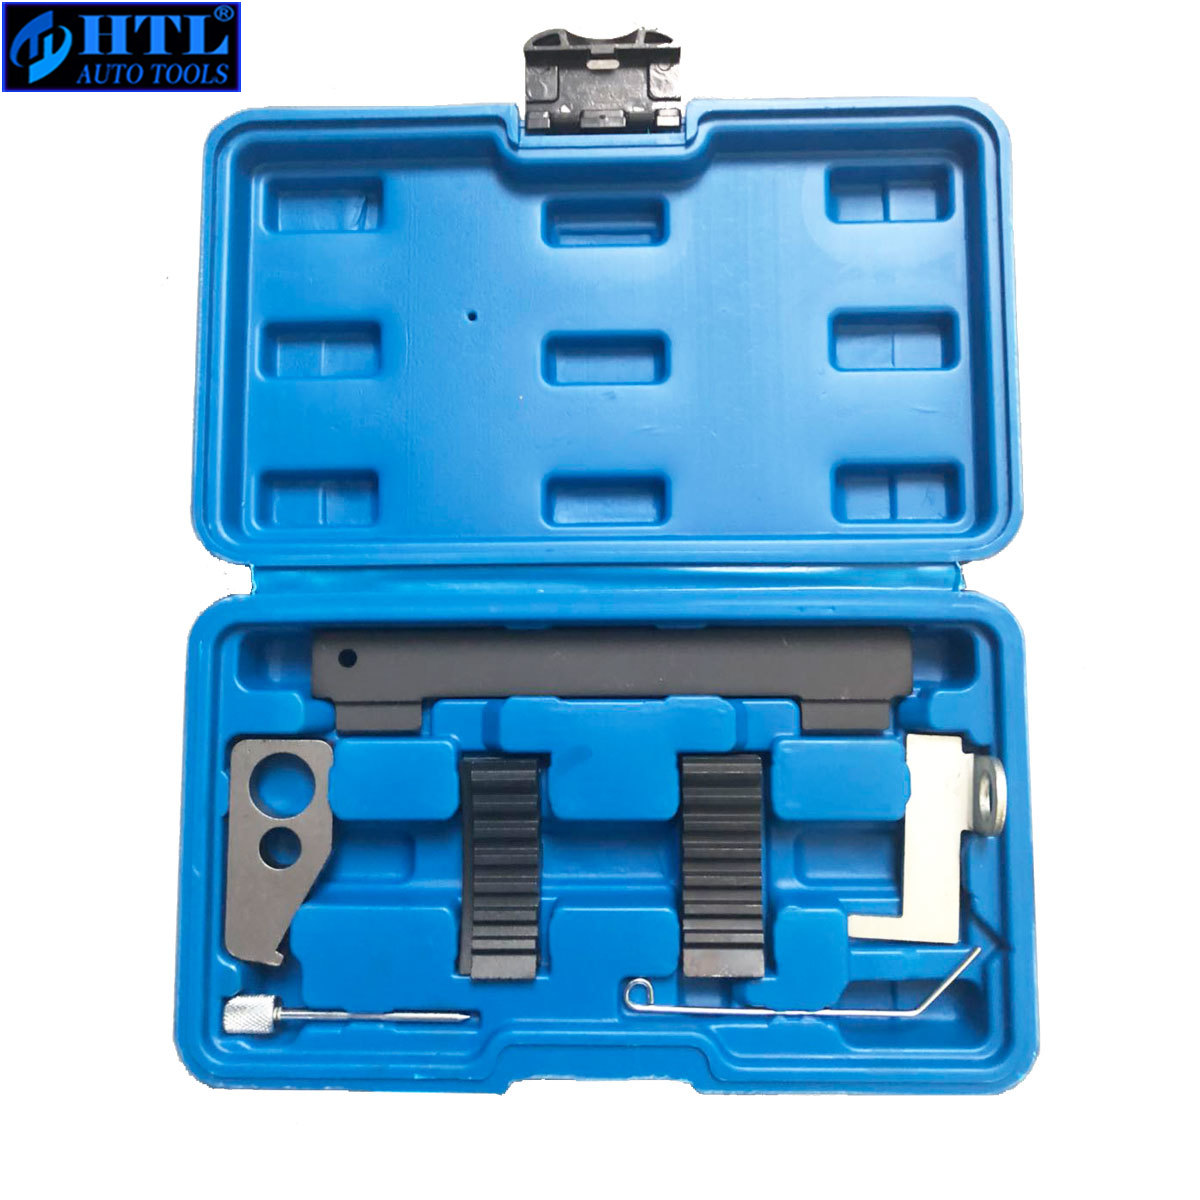 Engine Timing Tool Kit / water pump For Chevrolet Cruze Malibu/opel/regal/buick Excelle/epica|Engine Care|   - AliExpress